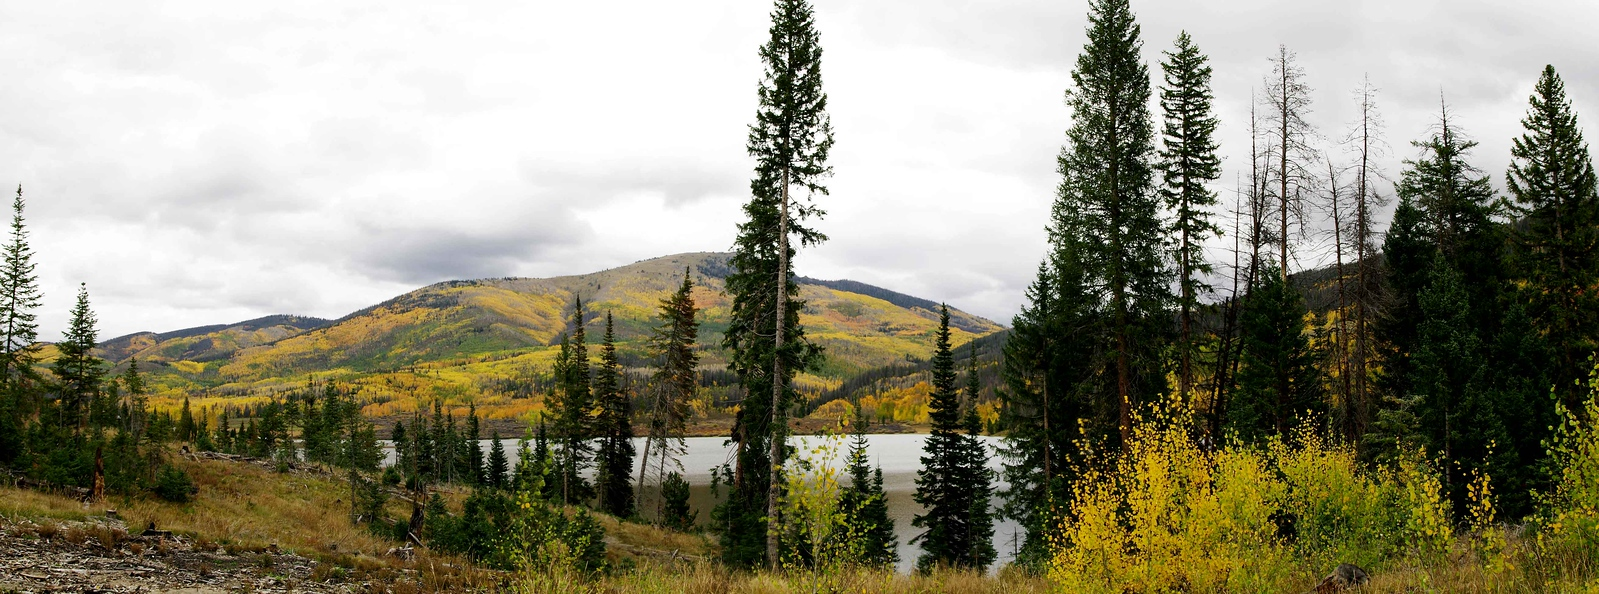 Pearl Lake SP Clark, Colorado  - We stopped in Steamboat again on the way to Utah & Arizona. Its gorgeous in late September.